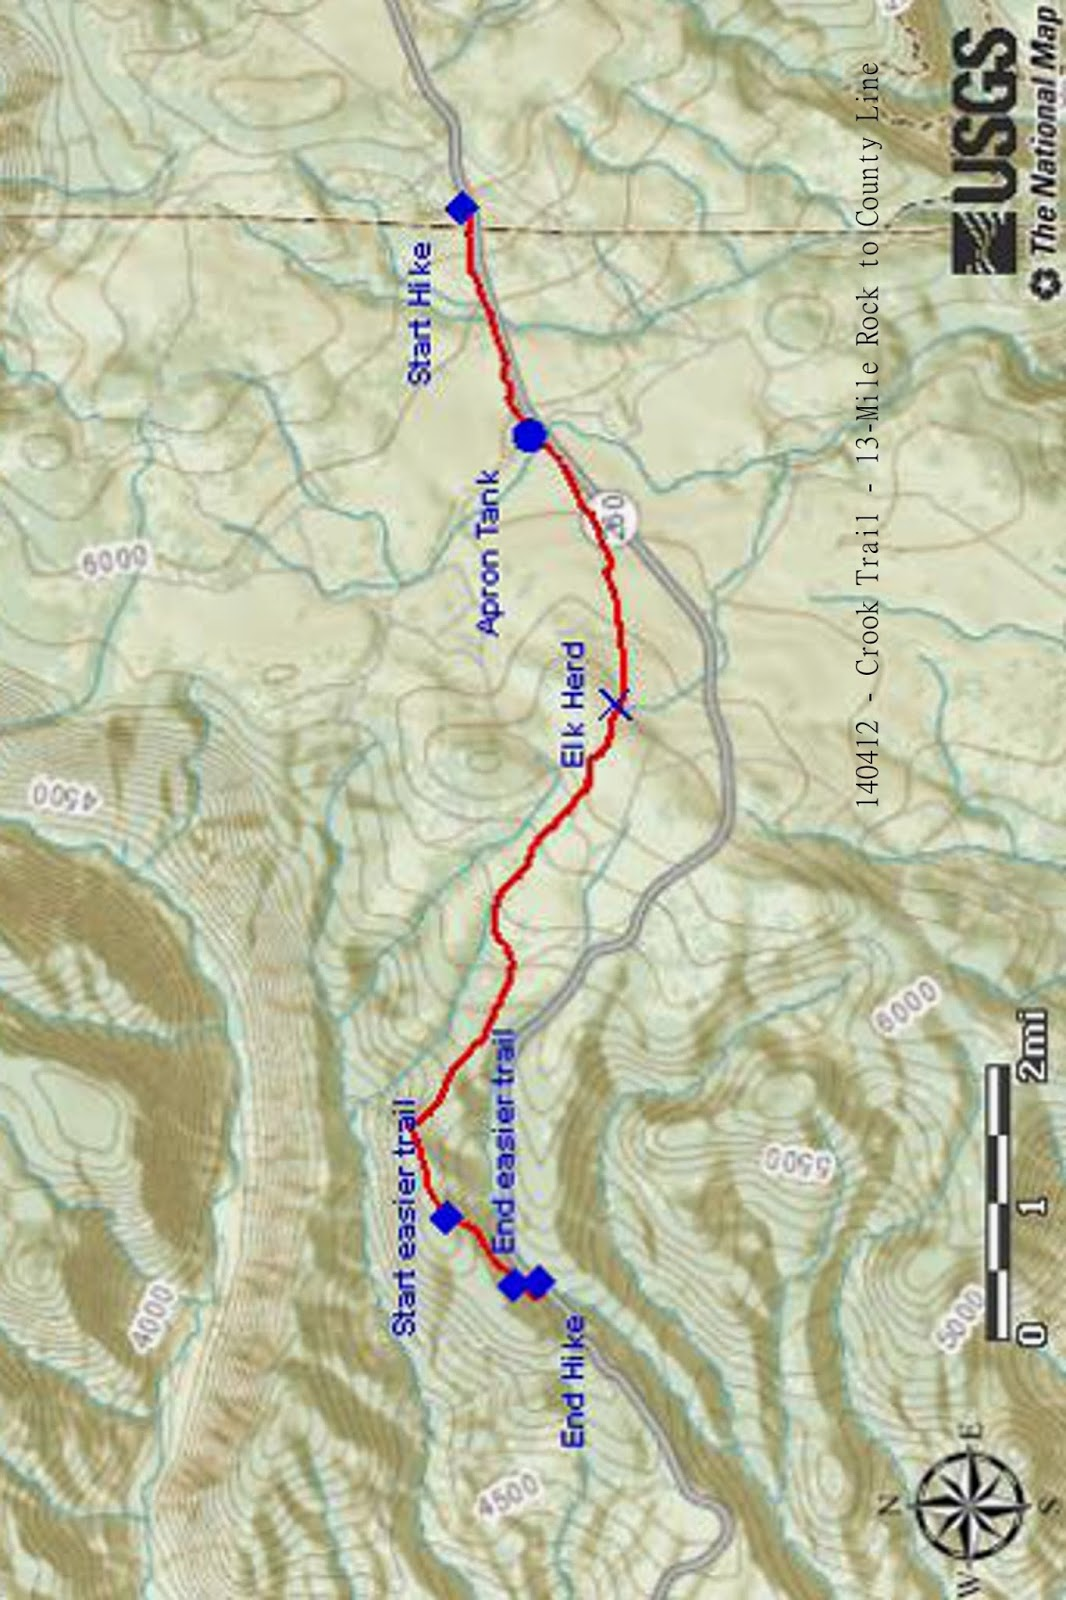 our hike path with a few modifications where we deviated too far from the trail is shown in red on the attached map below